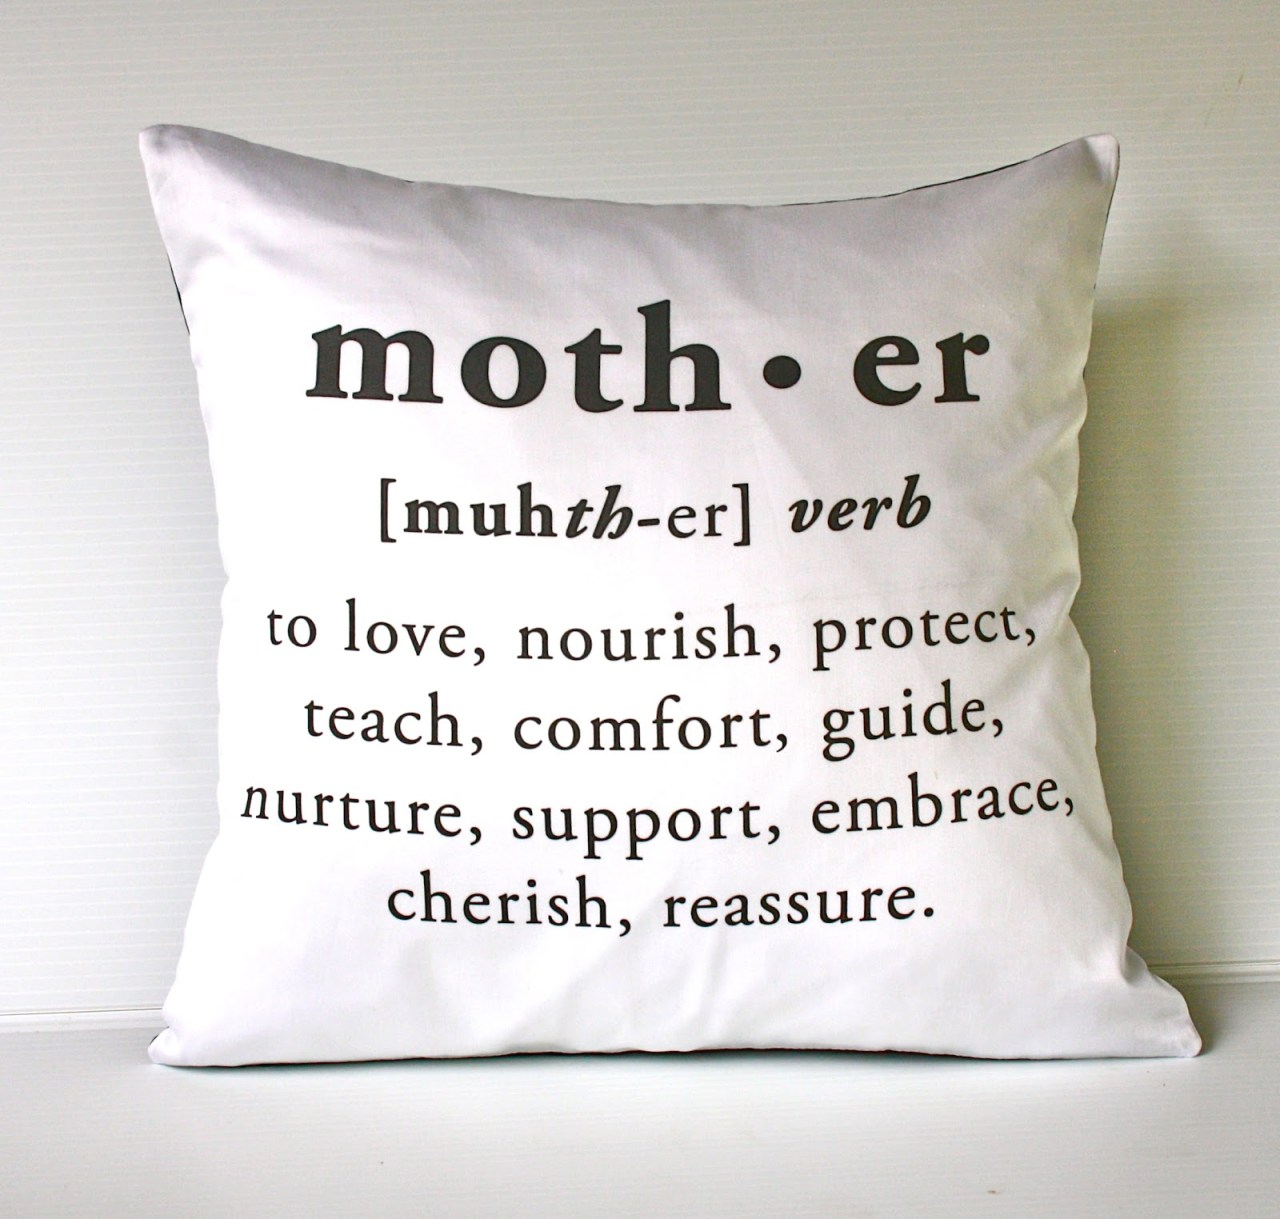 Mother's meaning